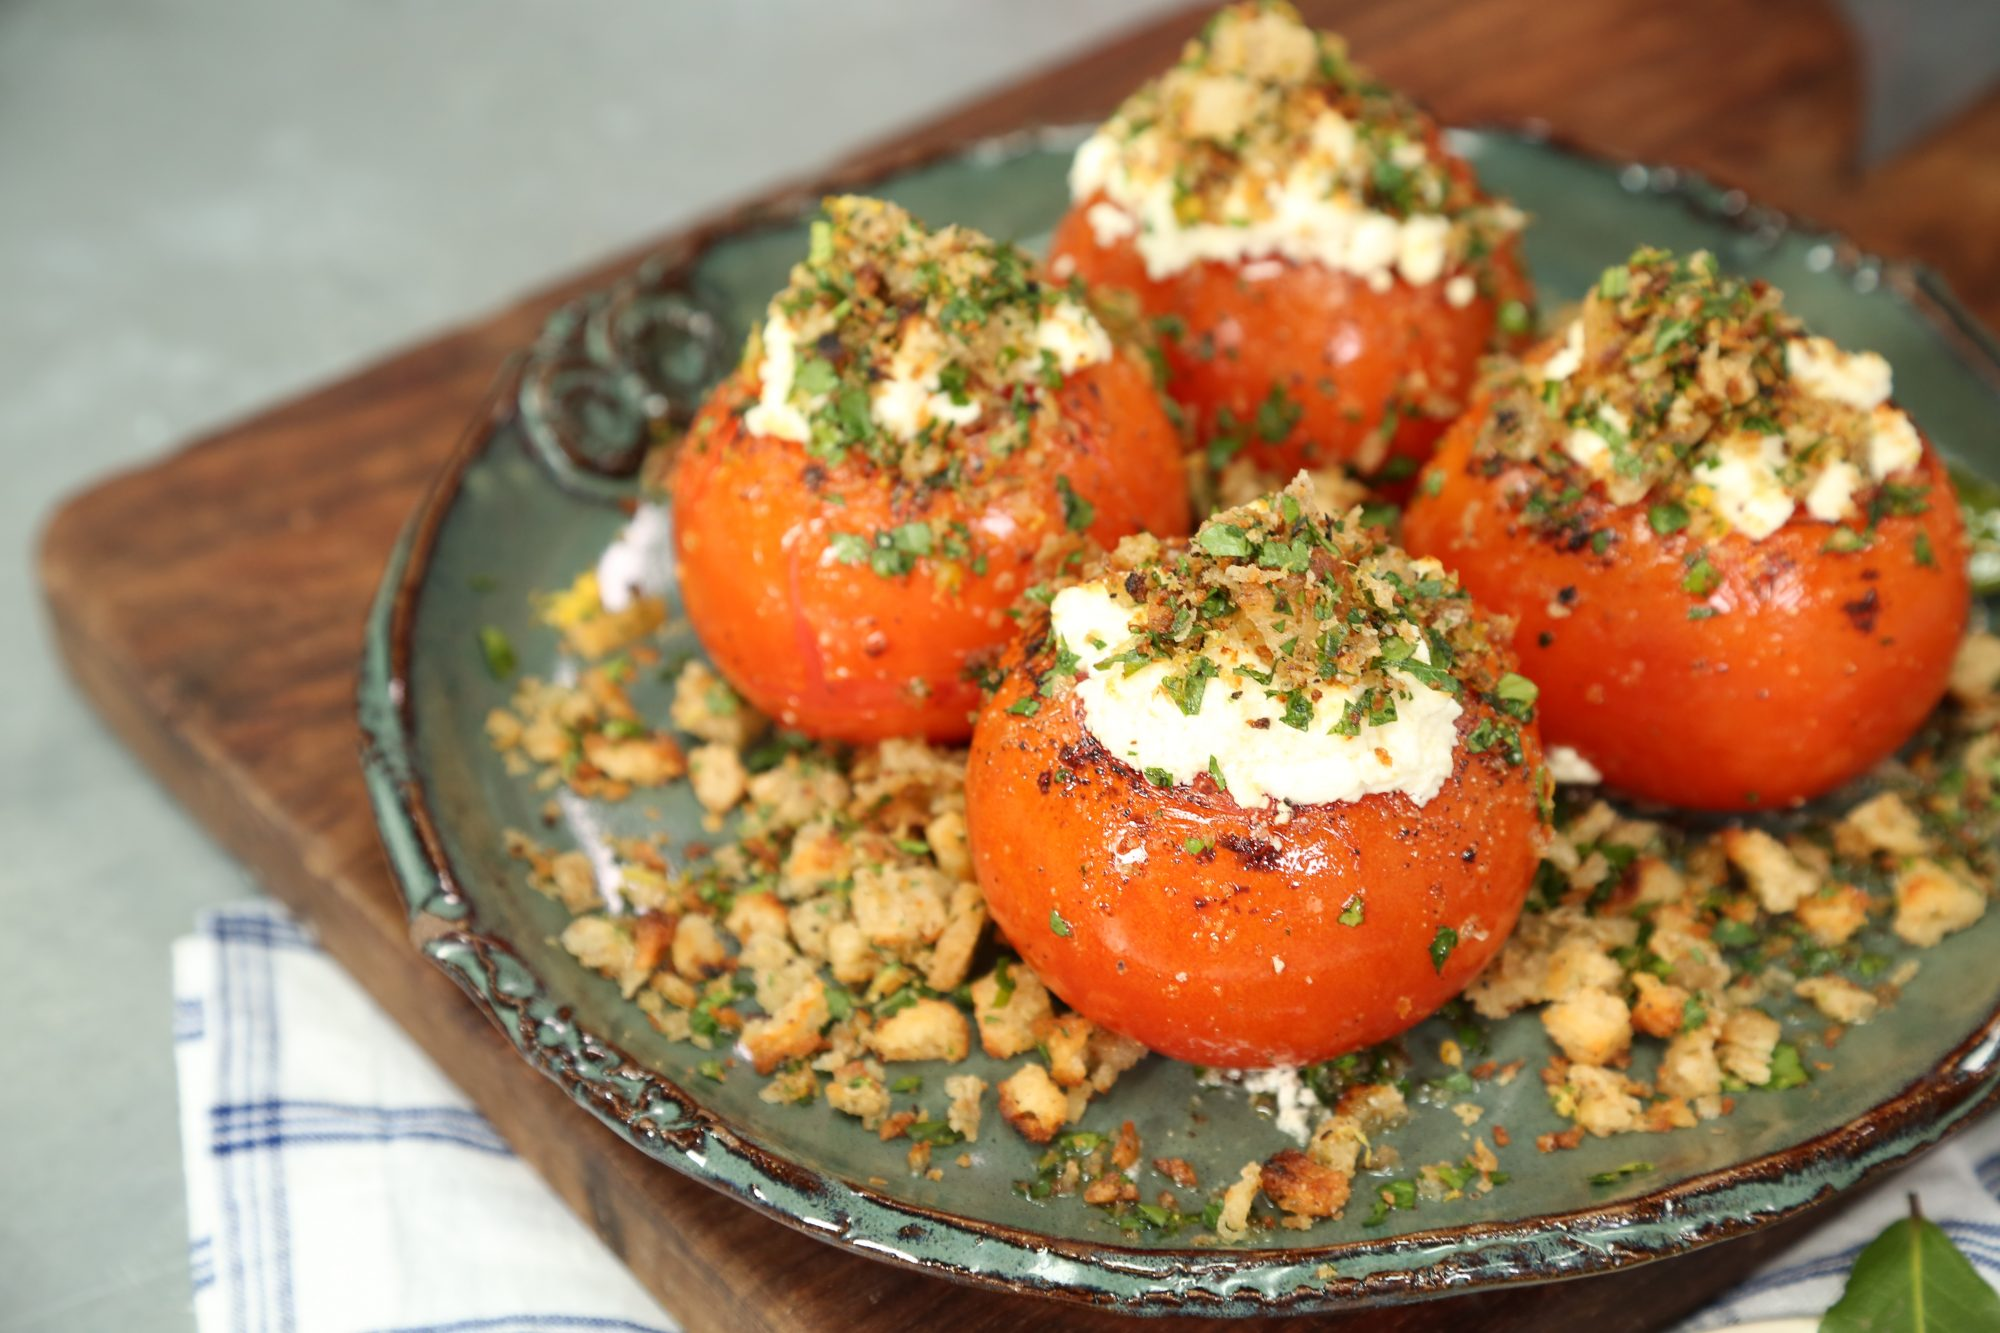 Rob McDaniel Baked Tomatoes with Goat Cheese and Breadcrumbs